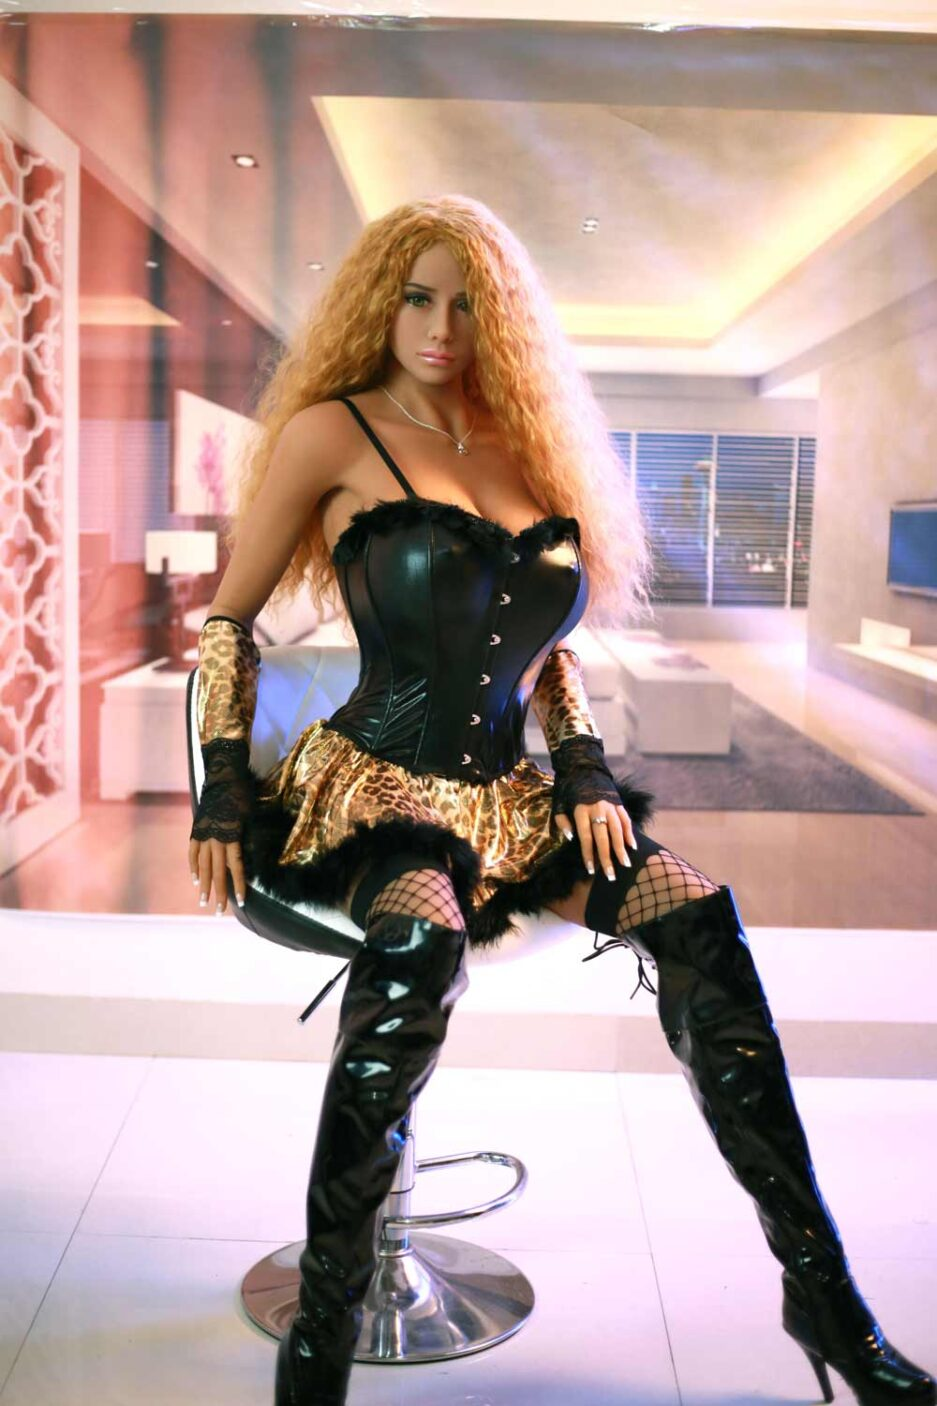 Big breasted sex doll with blonde curly hair